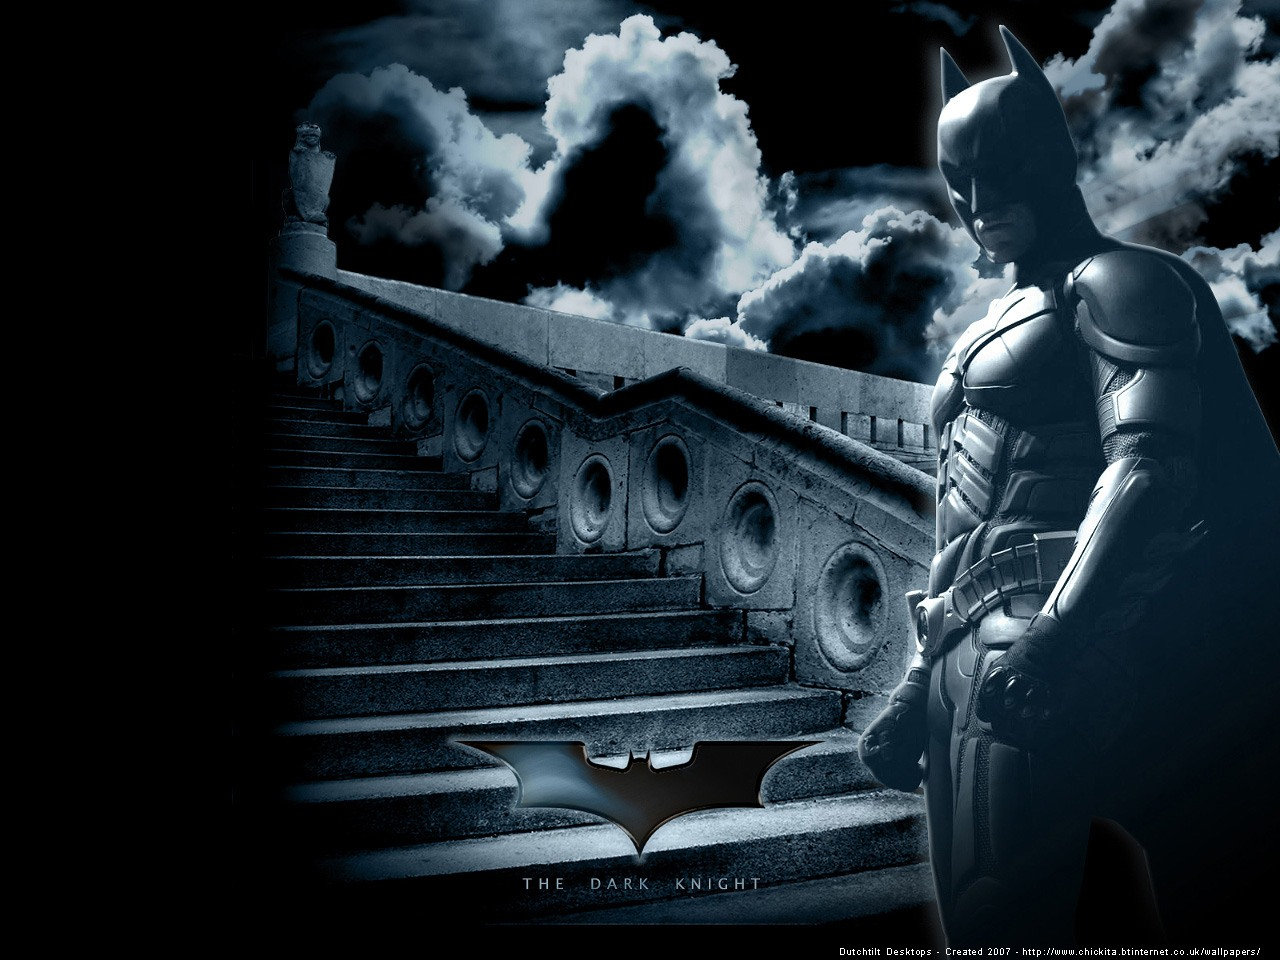 Batman dark knight wallpapers hd Funny amp Amazing Images 1280x960